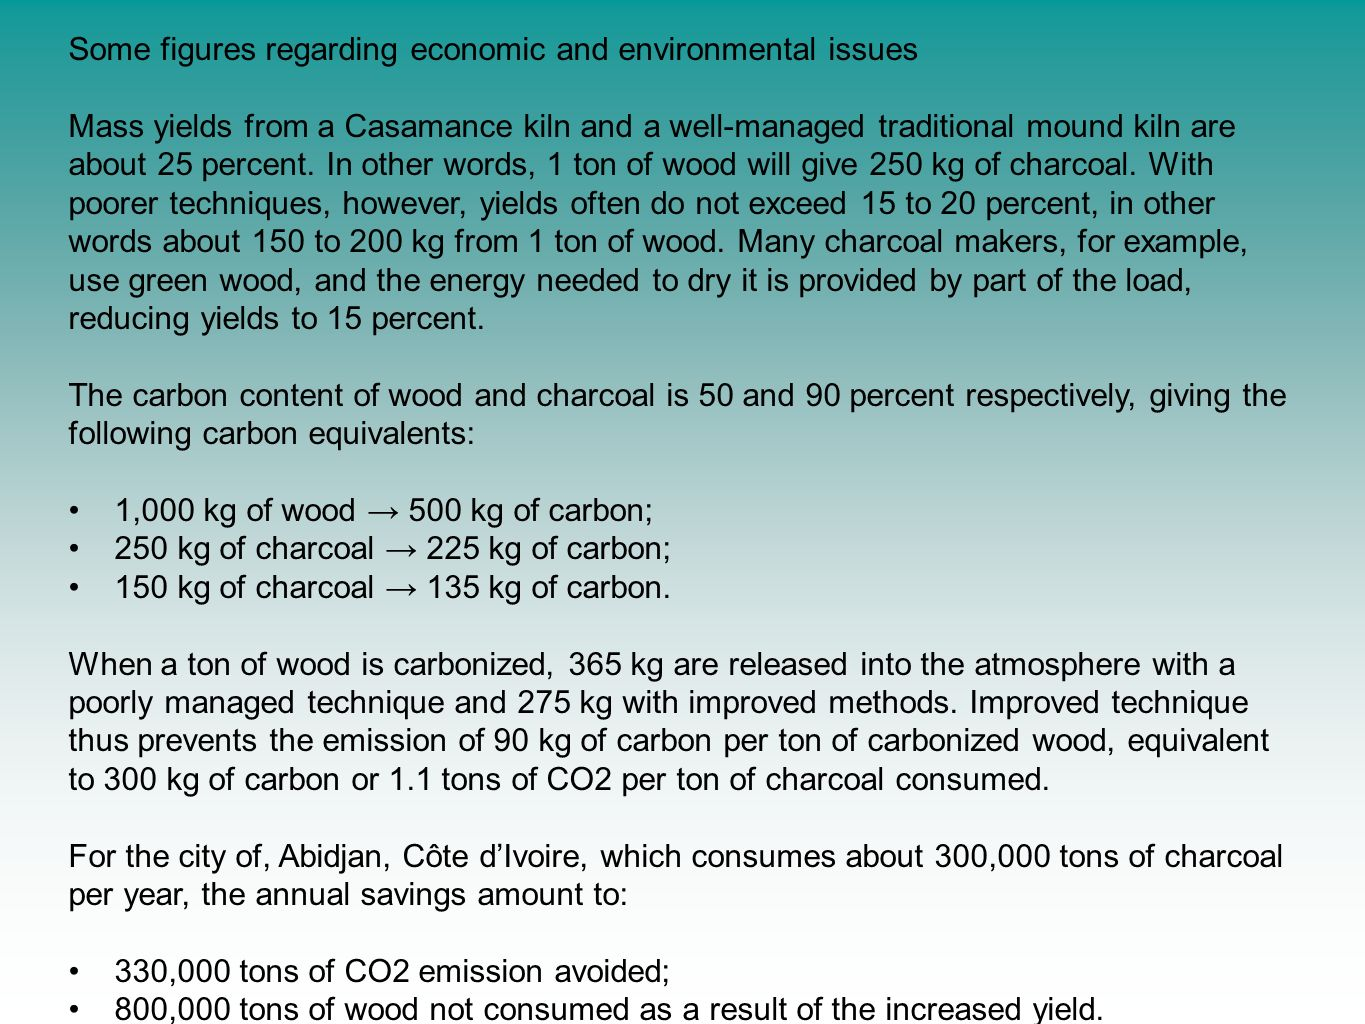 Some figures regarding economic and environmental issues